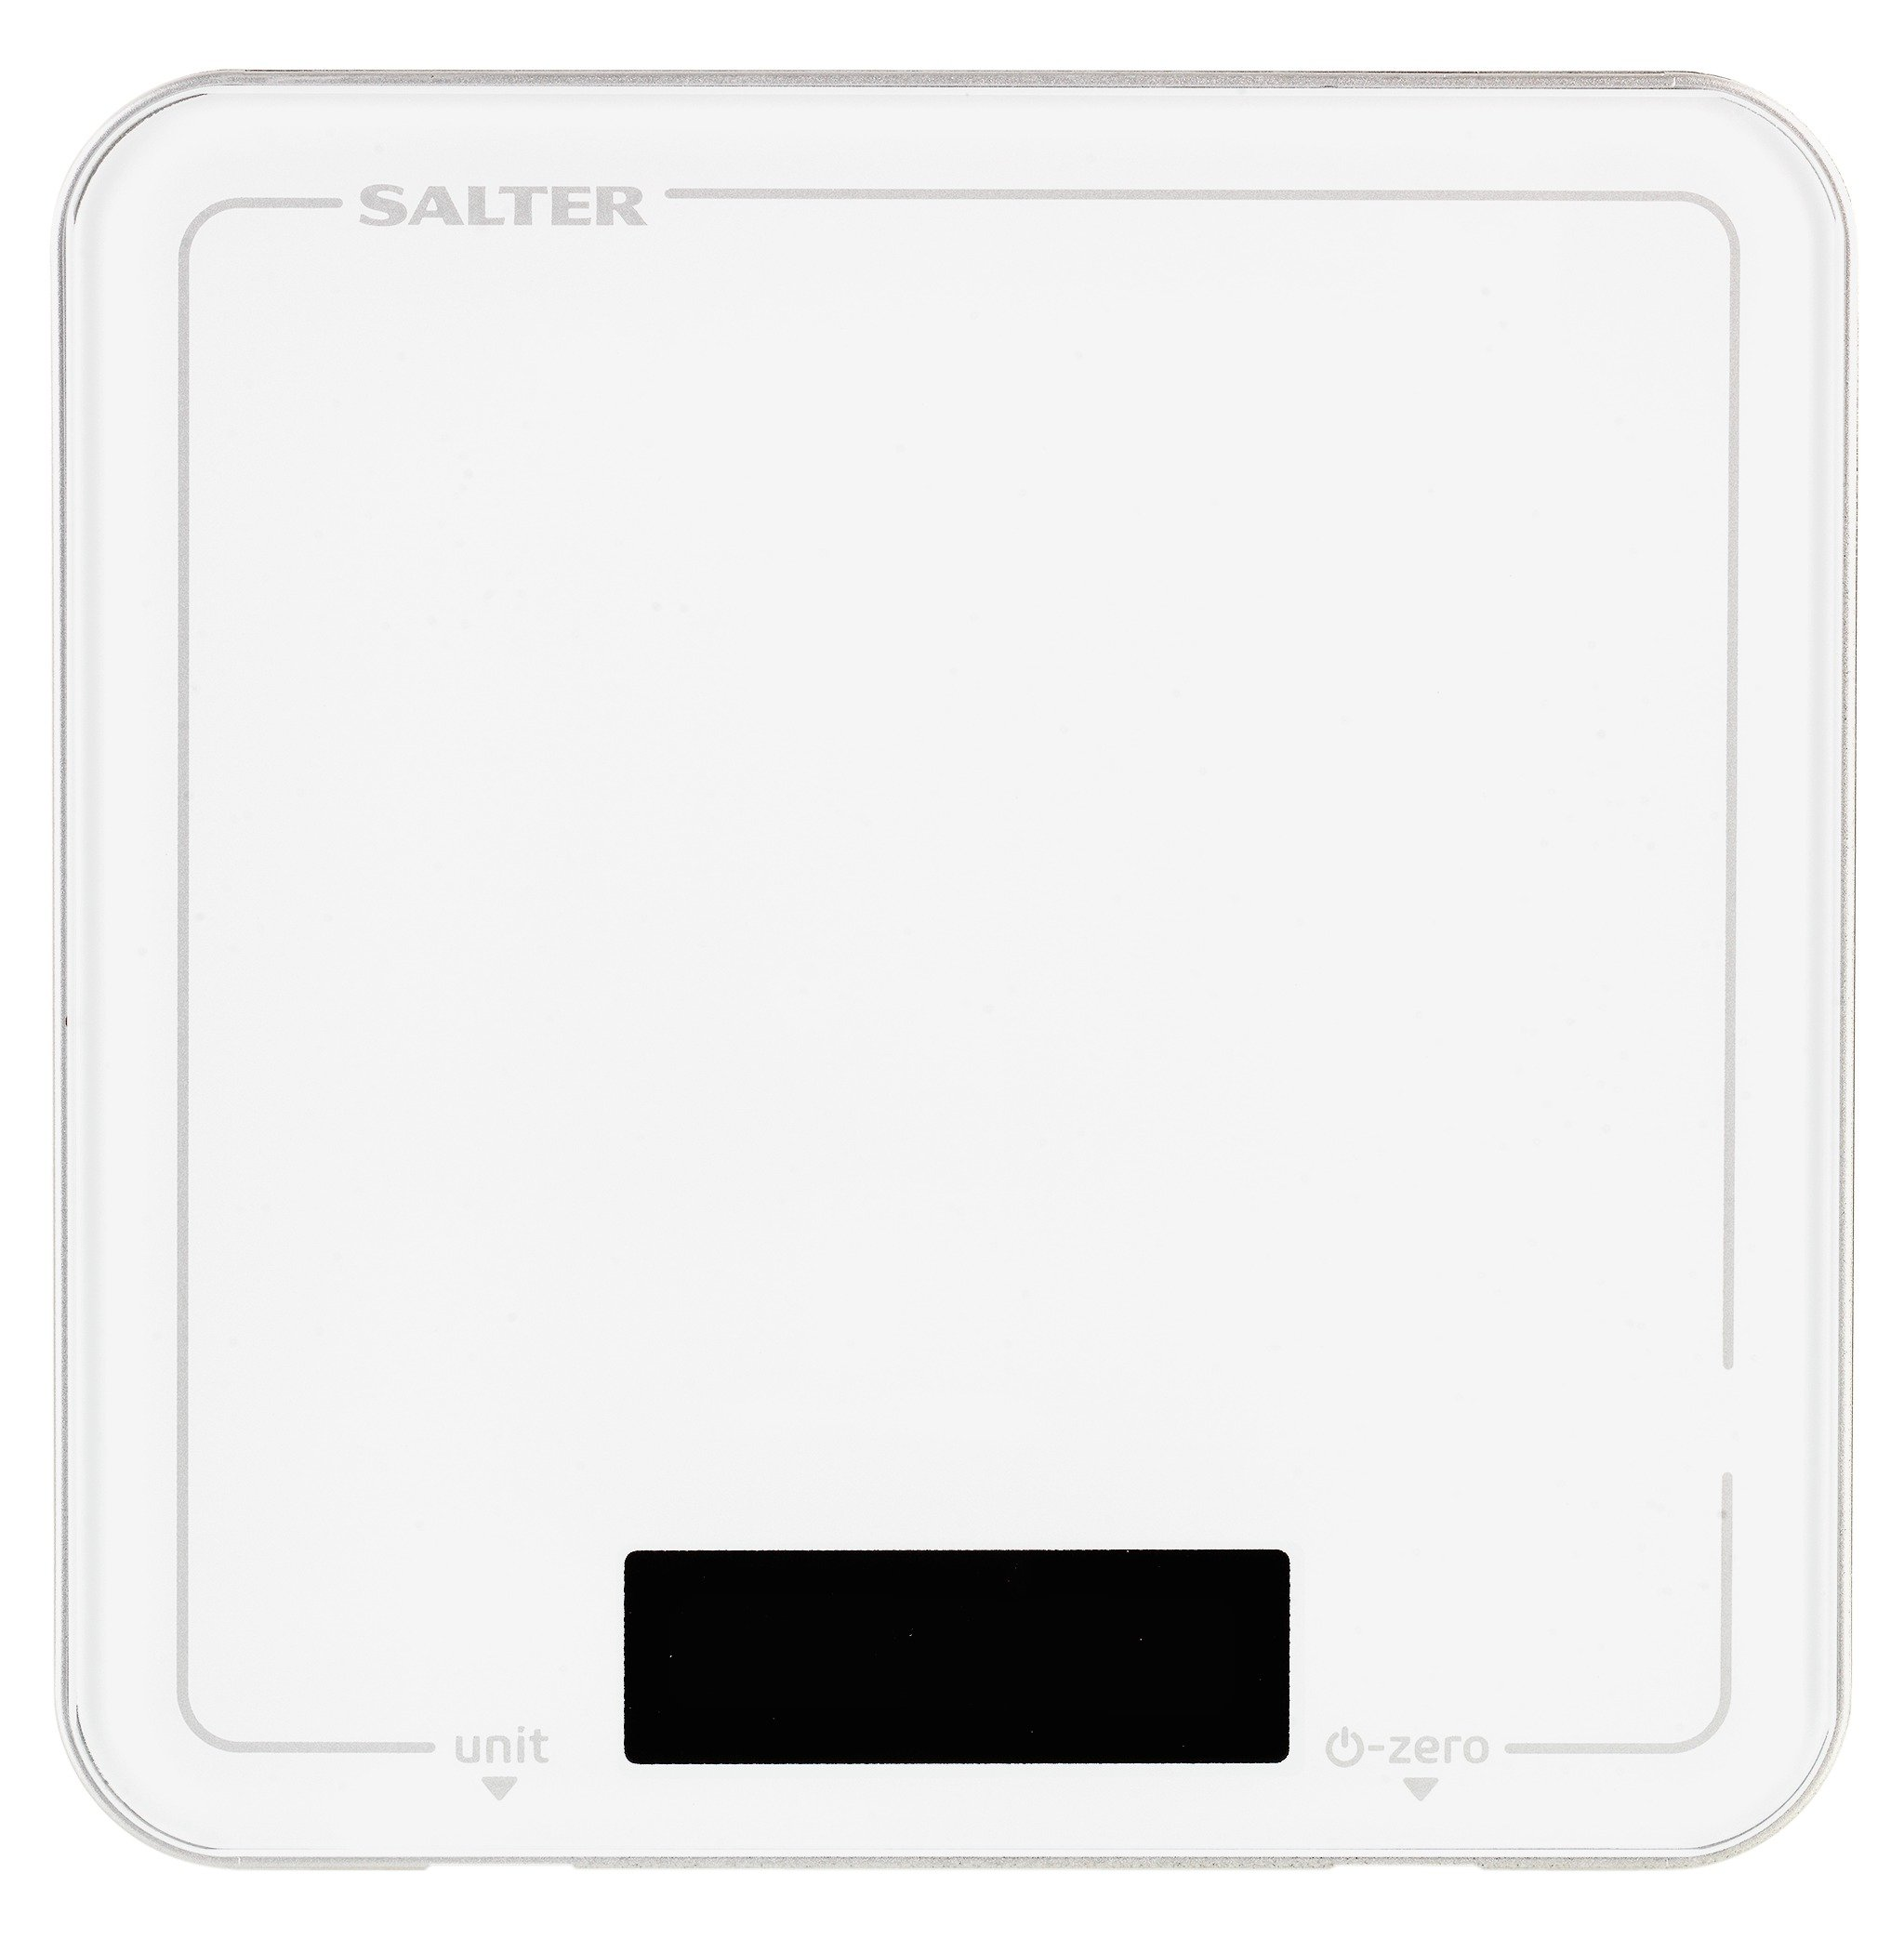 Image of Salter Cook Pro Bluetooth Recipe Scale